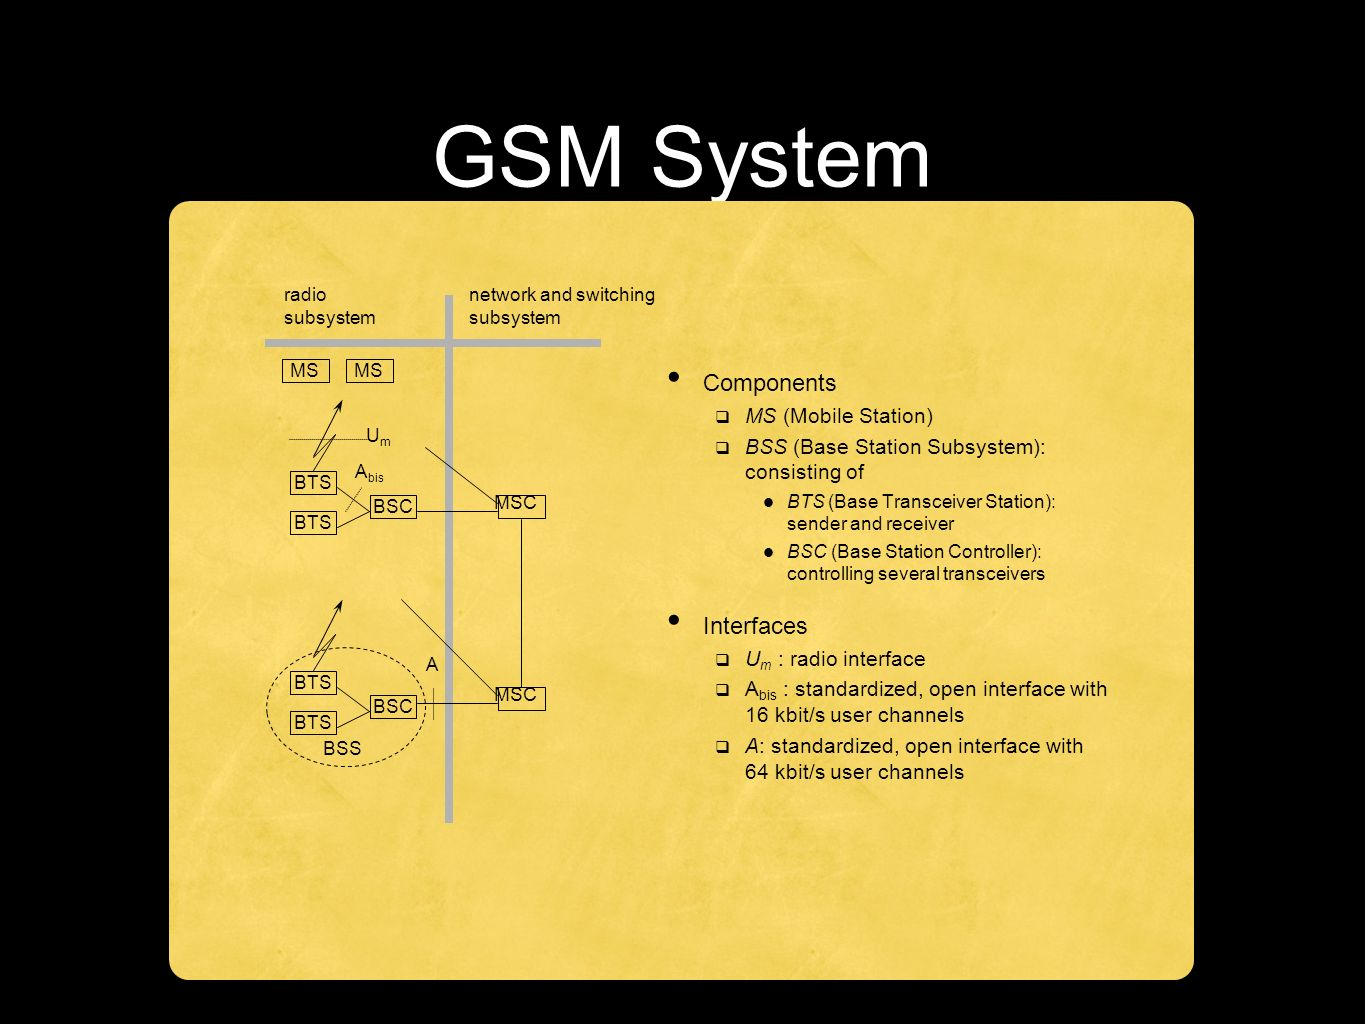 GSM System Components MS (Mobile Station) BSS (Base Station Subsystem): consisting of BTS (Base Transceiver Station): sender and receiver BSC (Base Station Controller): controlling several transceivers Interfaces U m : radio interface A bis : standardized, open interface with 16 kbit/s user channels A: standardized, open interface with 64 kbit/s user channels UmUm A bis A BSS radio subsystem network and switching subsystem MS BTS BSC MSC BTS BSC BTS MSC